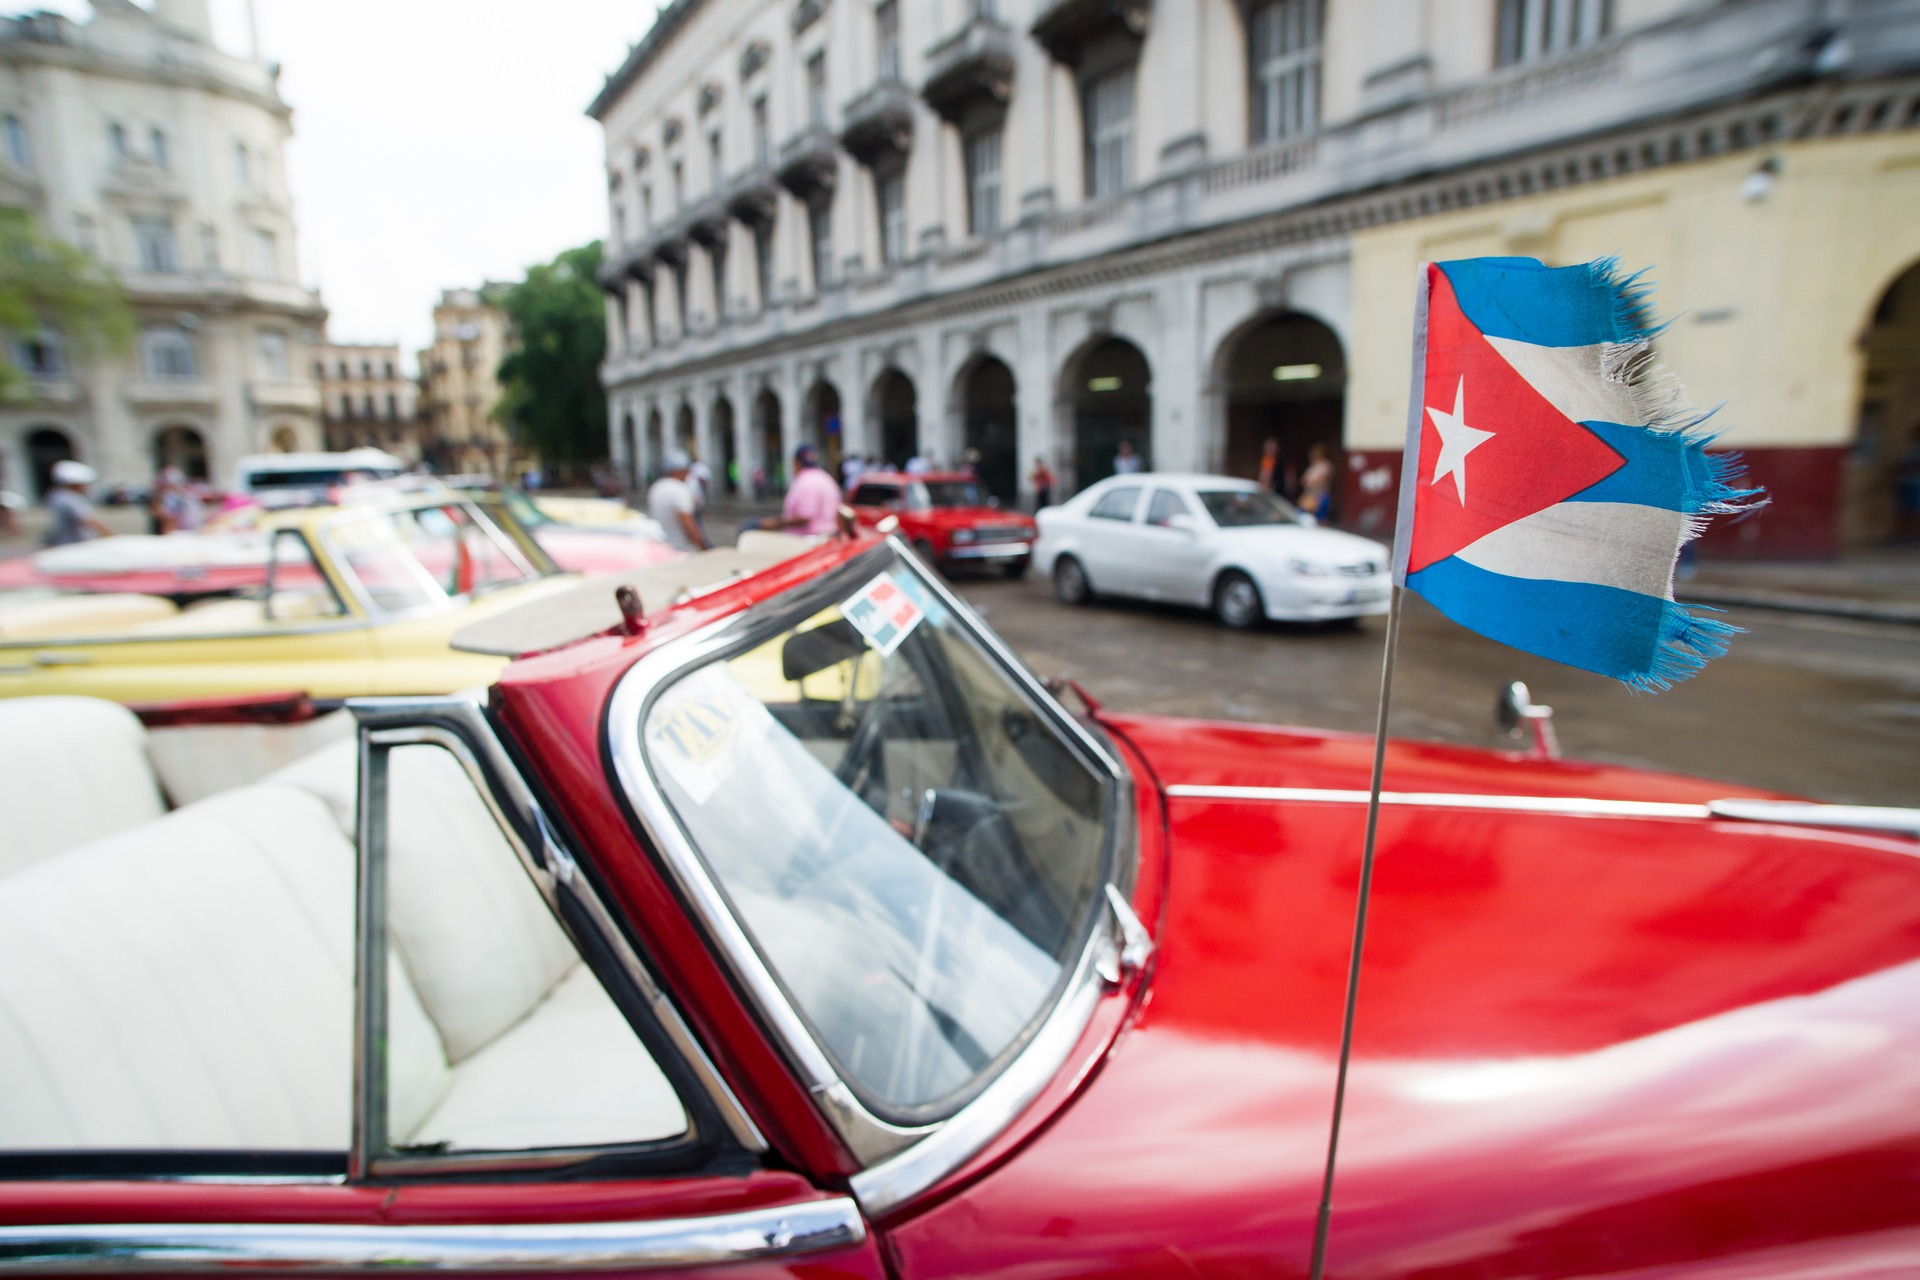 2017 Travel To Cuba U S To Cuba Travel Fever Dwindles In 2017 Cardtrak